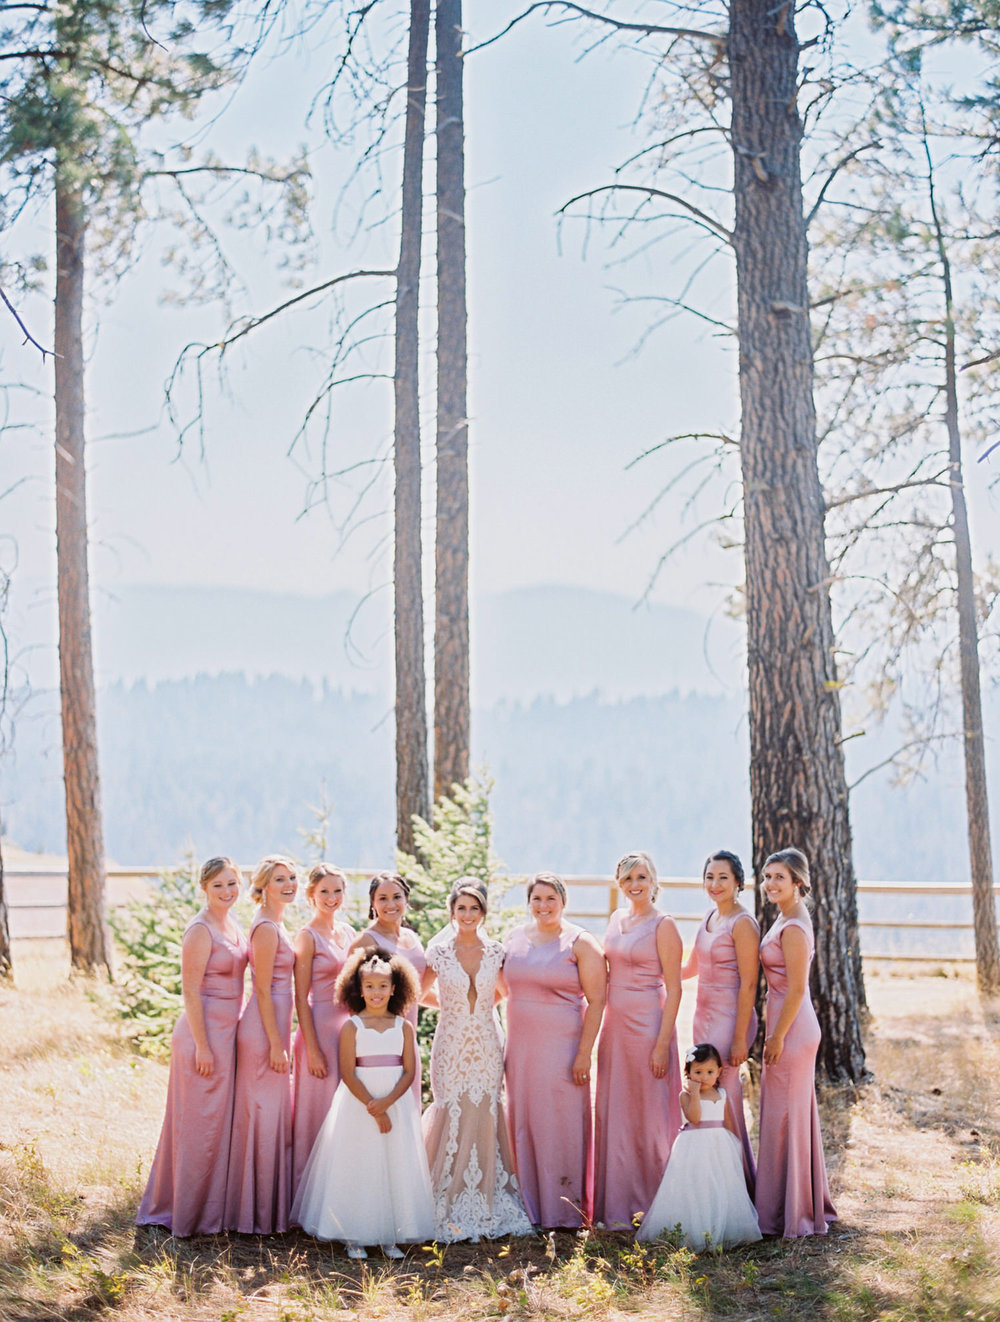 260-bright-coral-wedding-with-sinclair-and-moore-at-suncadia-resort.jpg